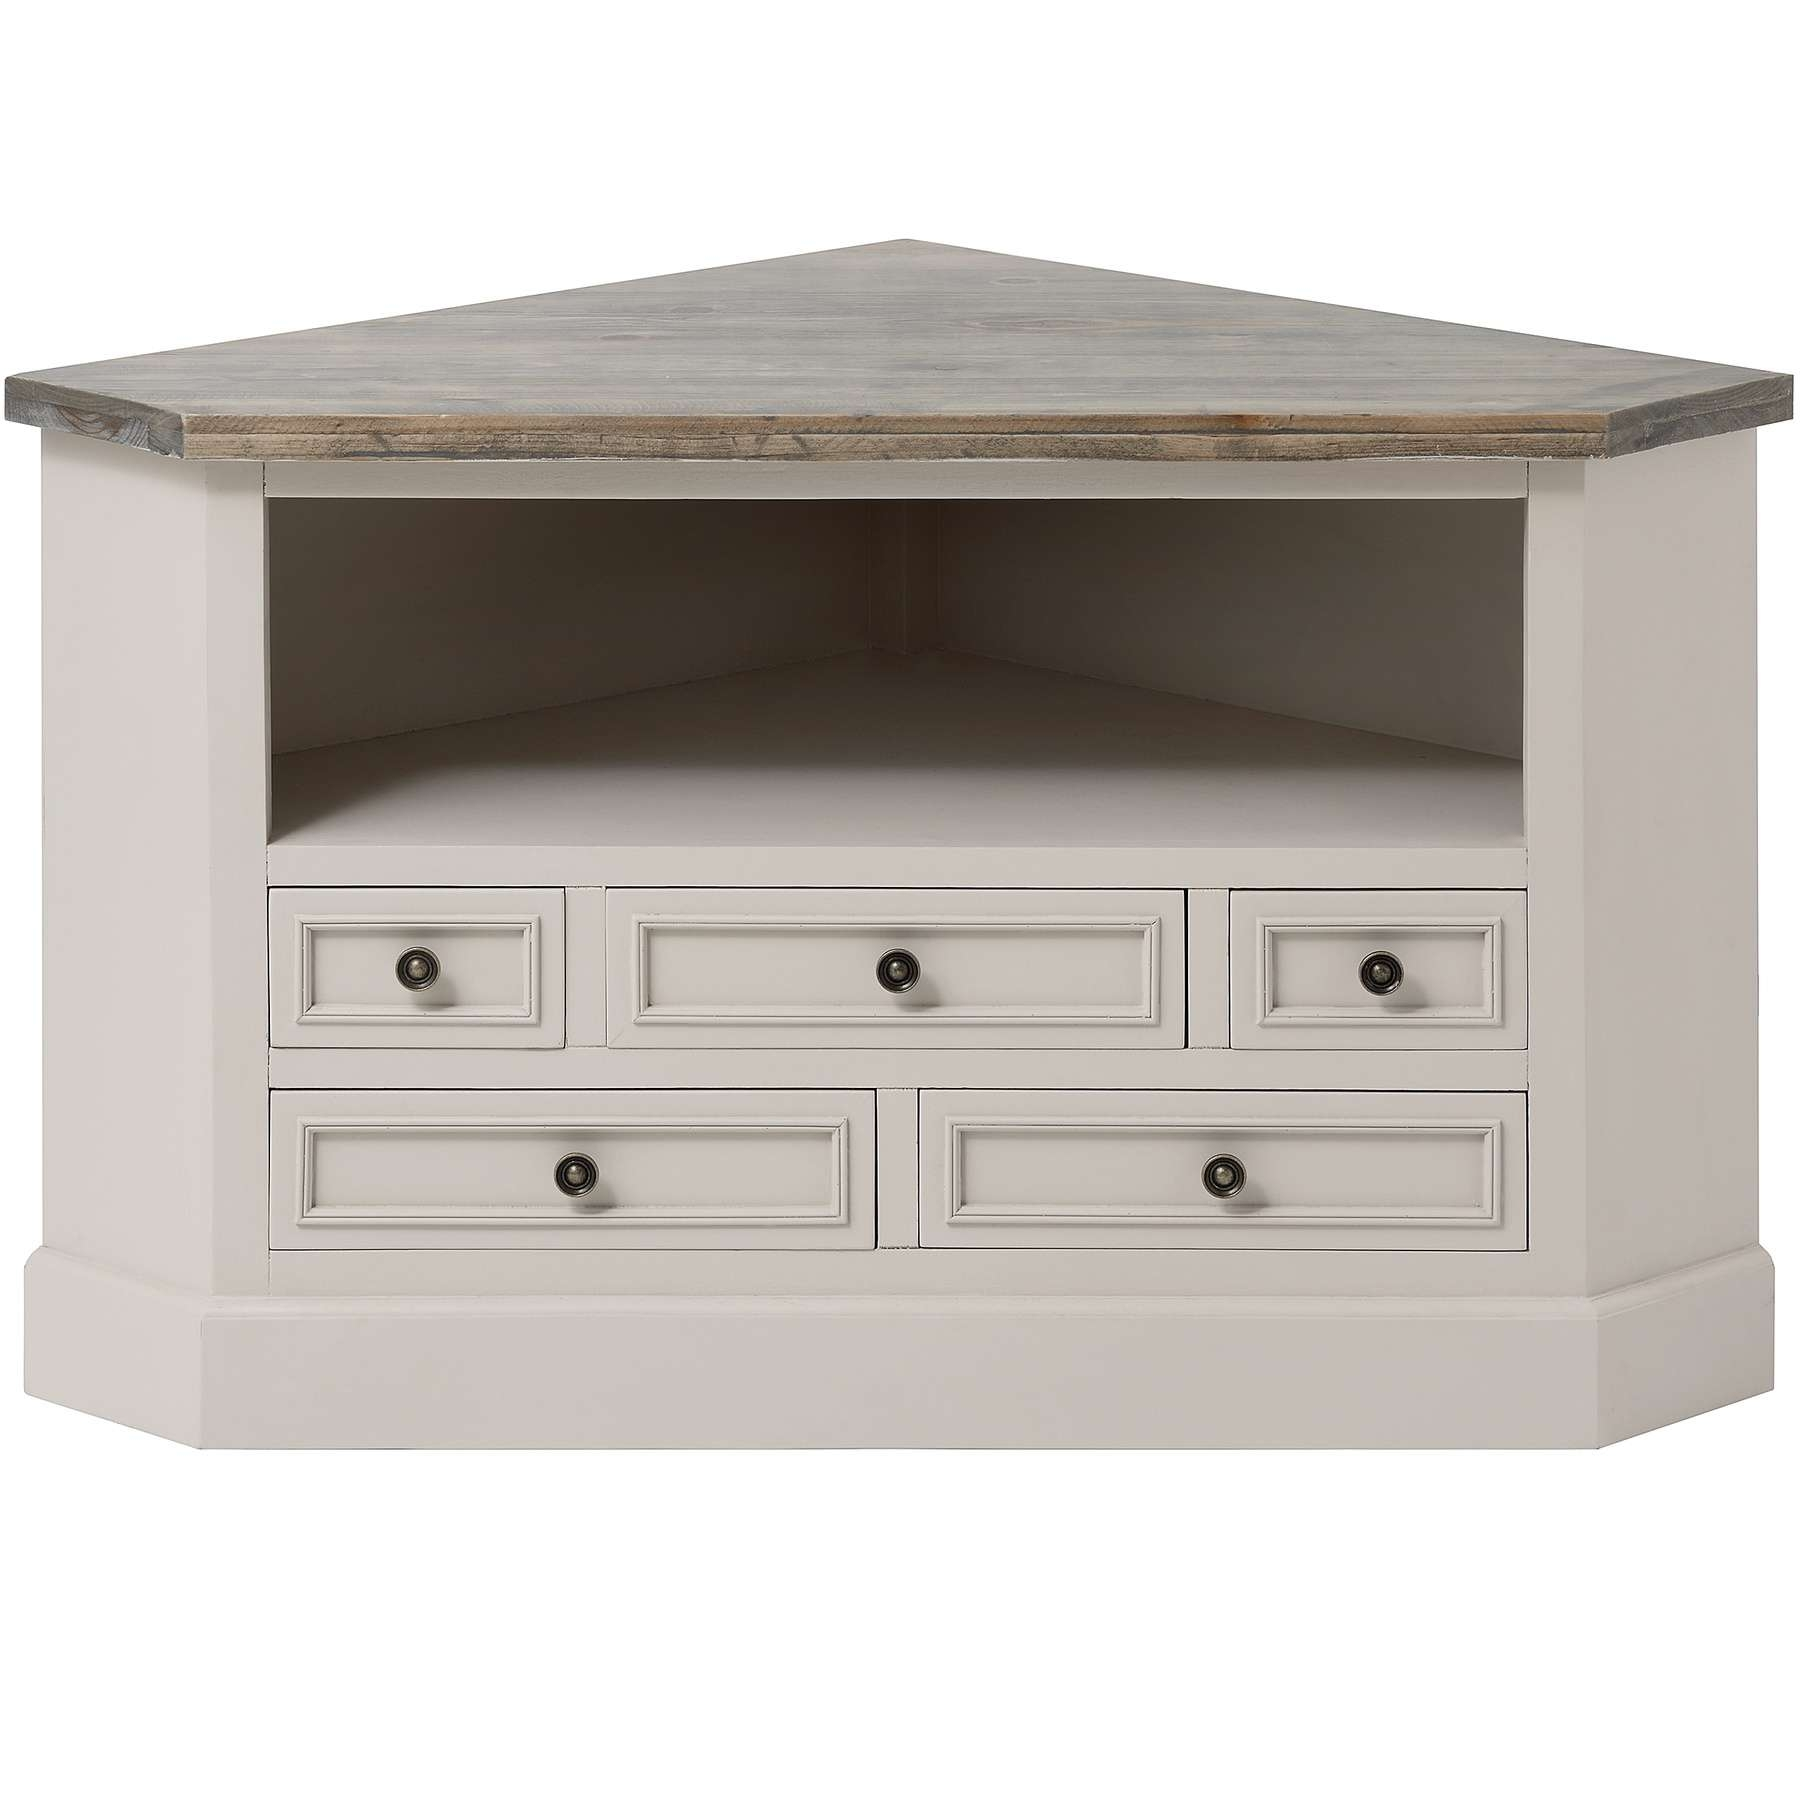 Rustic White Painted Walnut Wood Corner Tv Stand With Drawers Of For Wooden Corner Tv Cabinets (View 10 of 20)